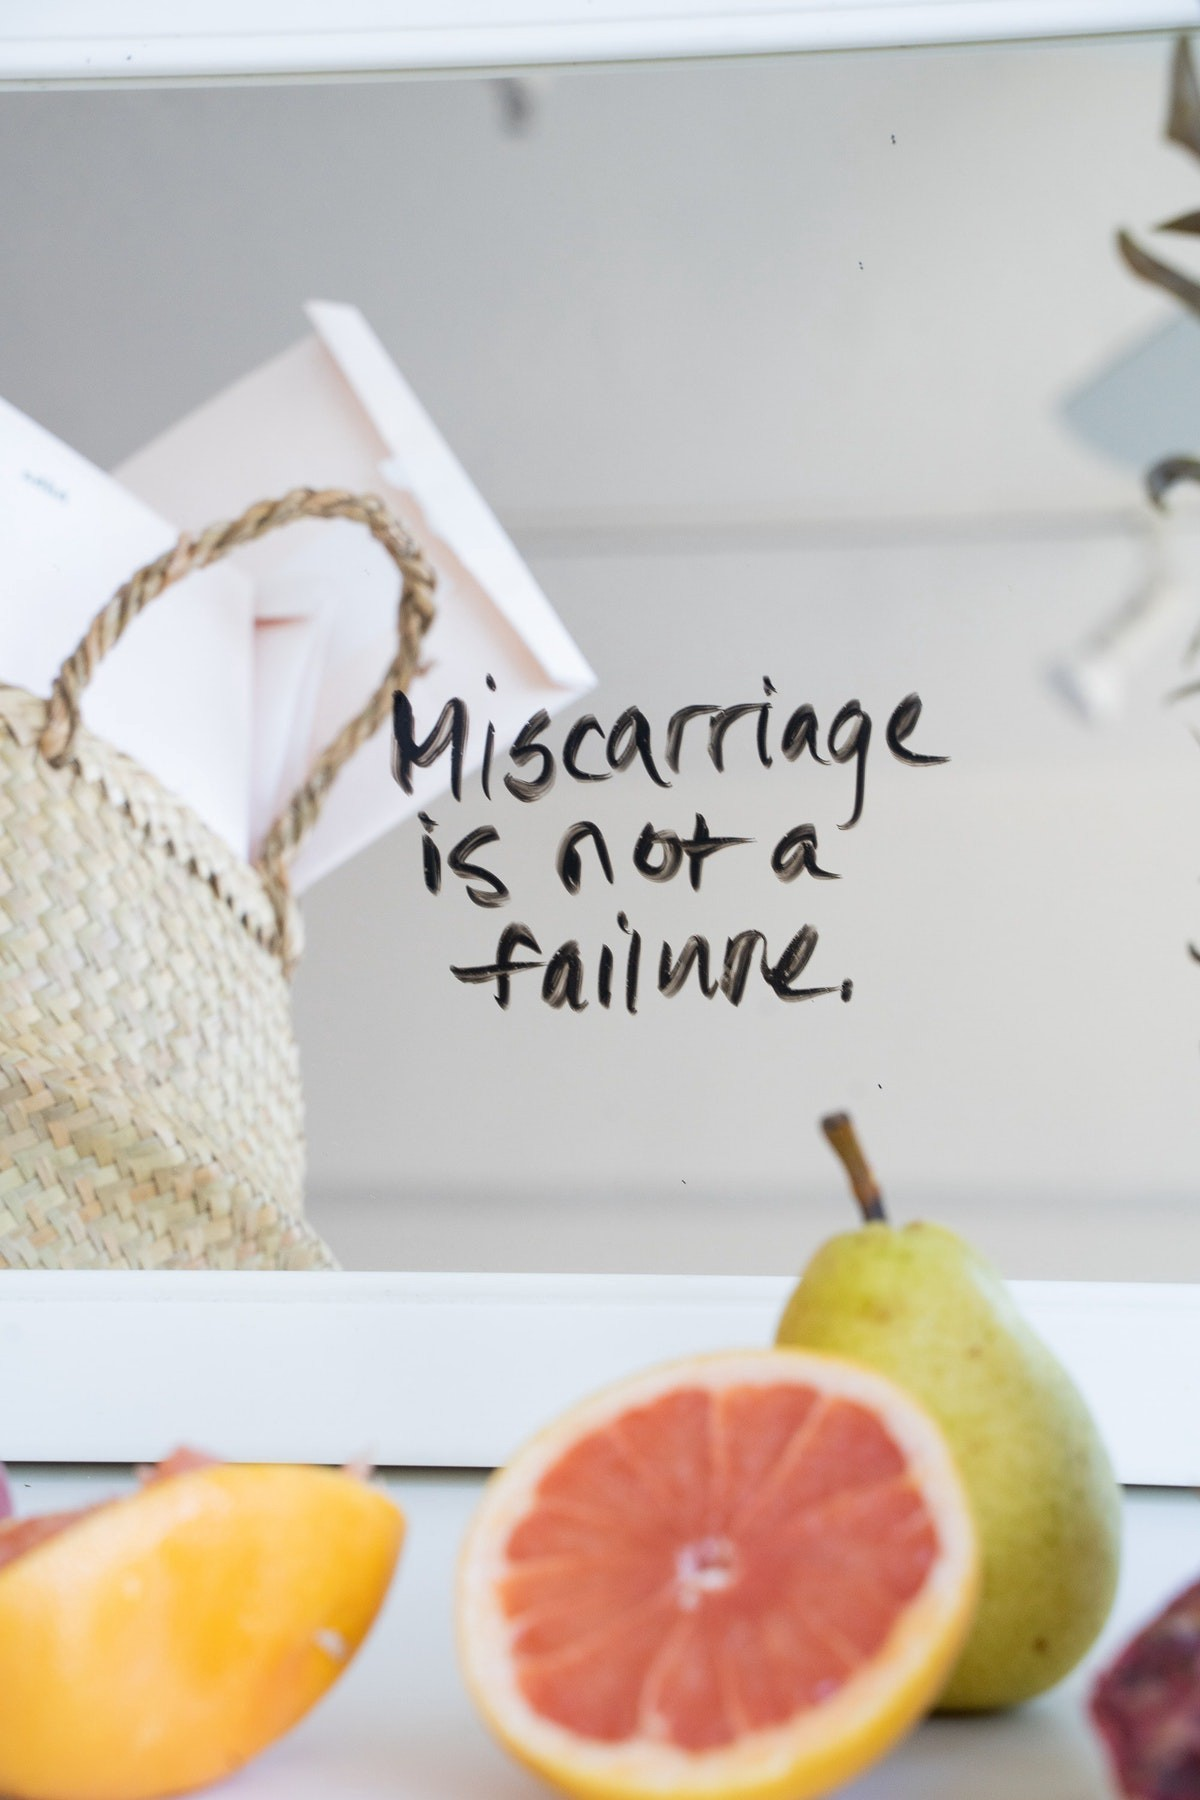 """a half of a grapefruit and a pear sitting on a kitchen counter. the words """"miscarriage is not a failure"""" are written above them in black ink"""